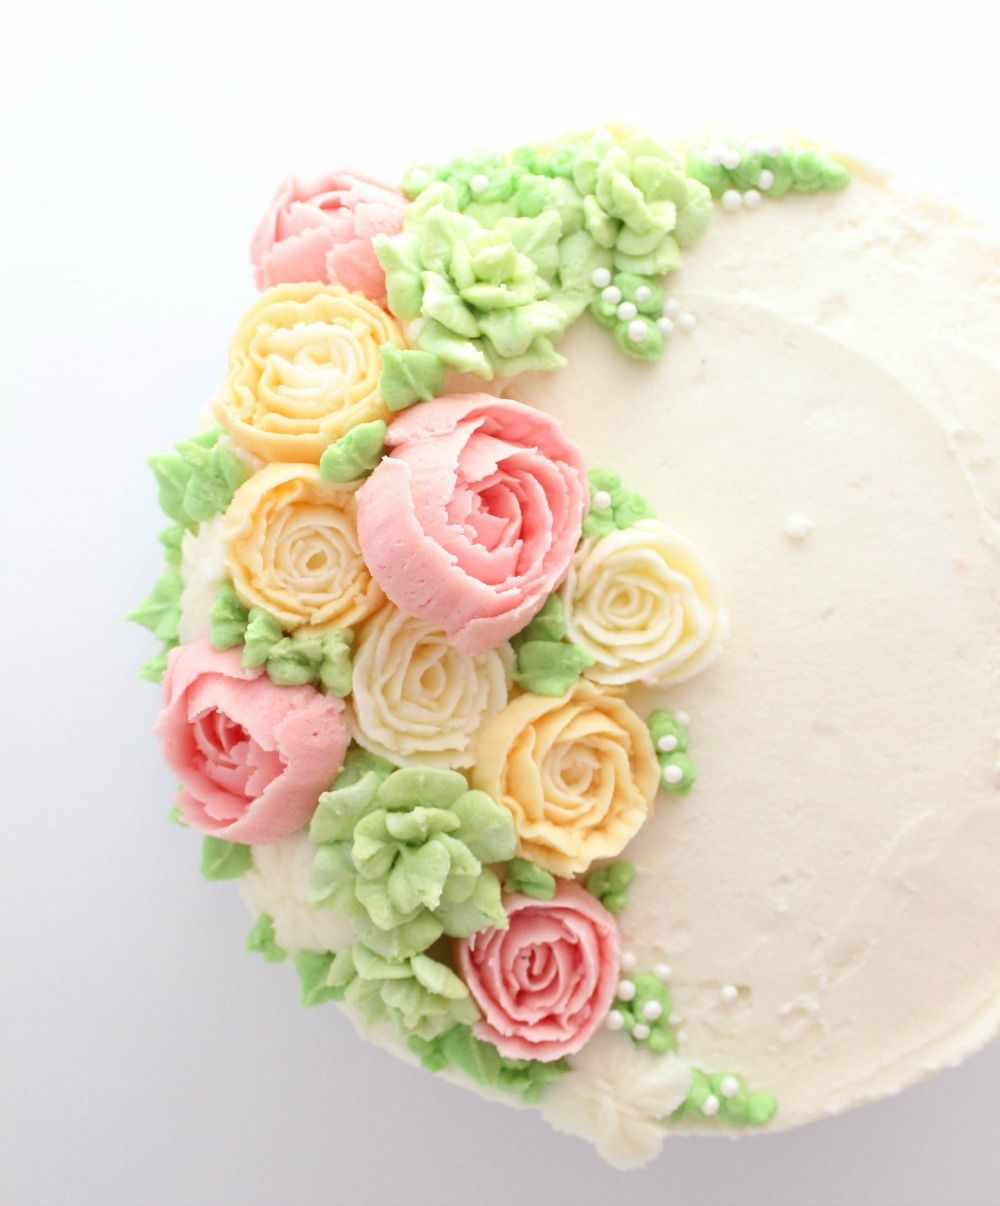 Cake Decoration Flowers Recipe : Buttercream Flower Cake Buttercream flowers, Decorating ...